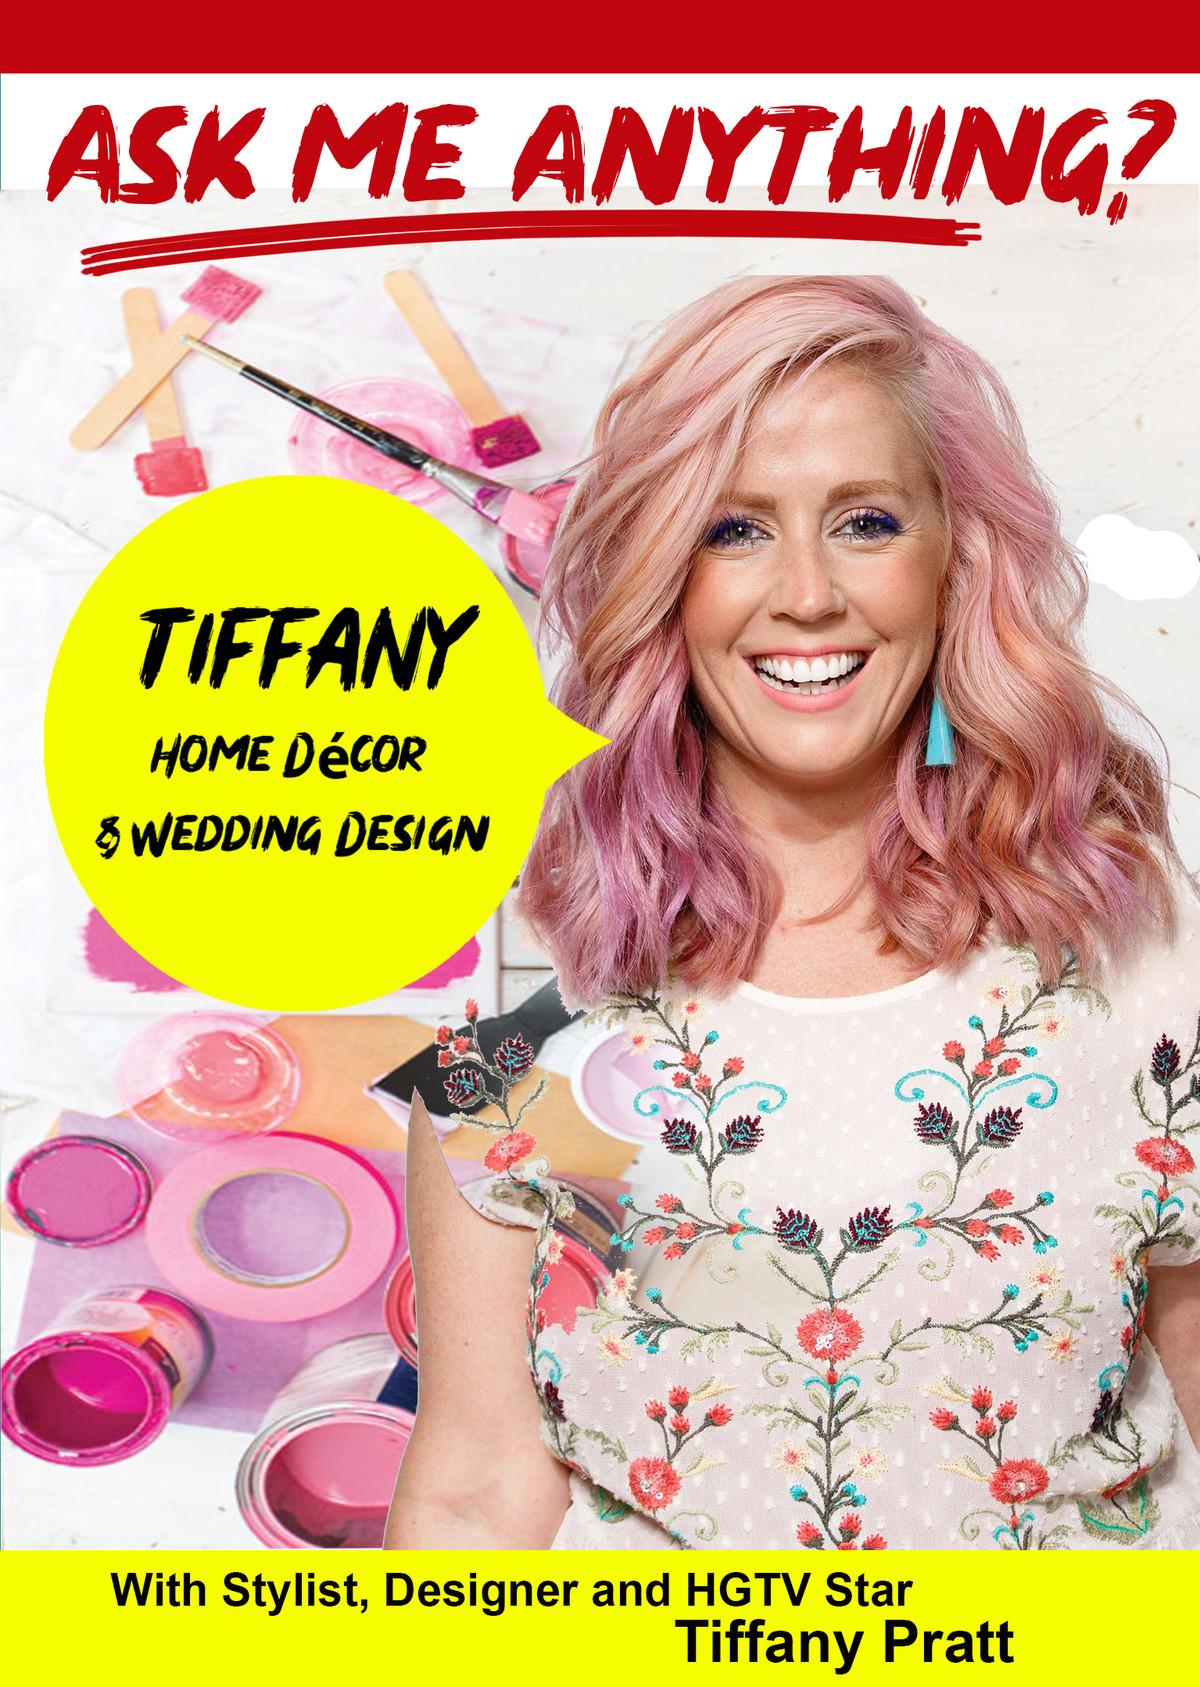 K4831 - Ask Me Anything about Home Dcor & Wedding Design with Tiffany Pratt